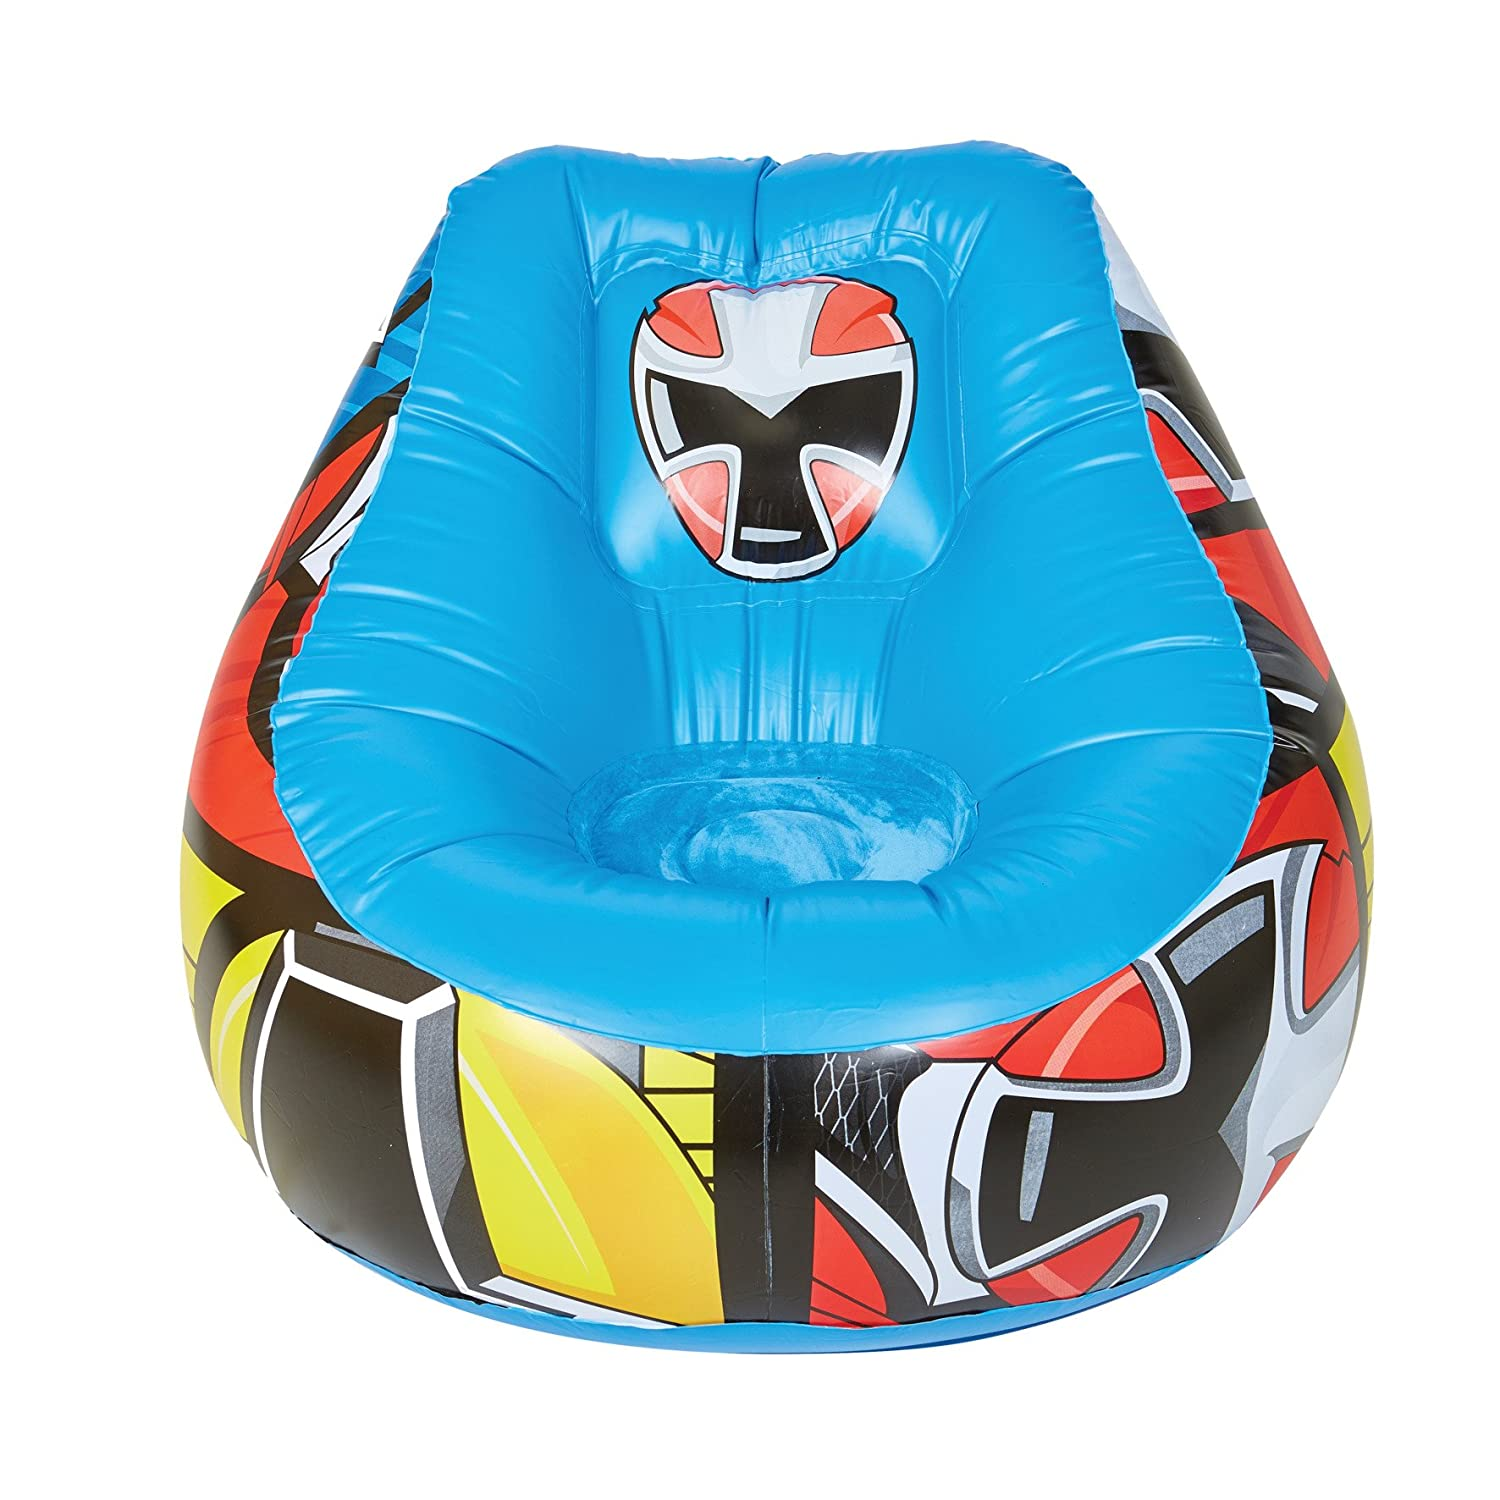 Power Rangers Inflatable Kids Chair: Power Rangers: Amazon.co.uk ...